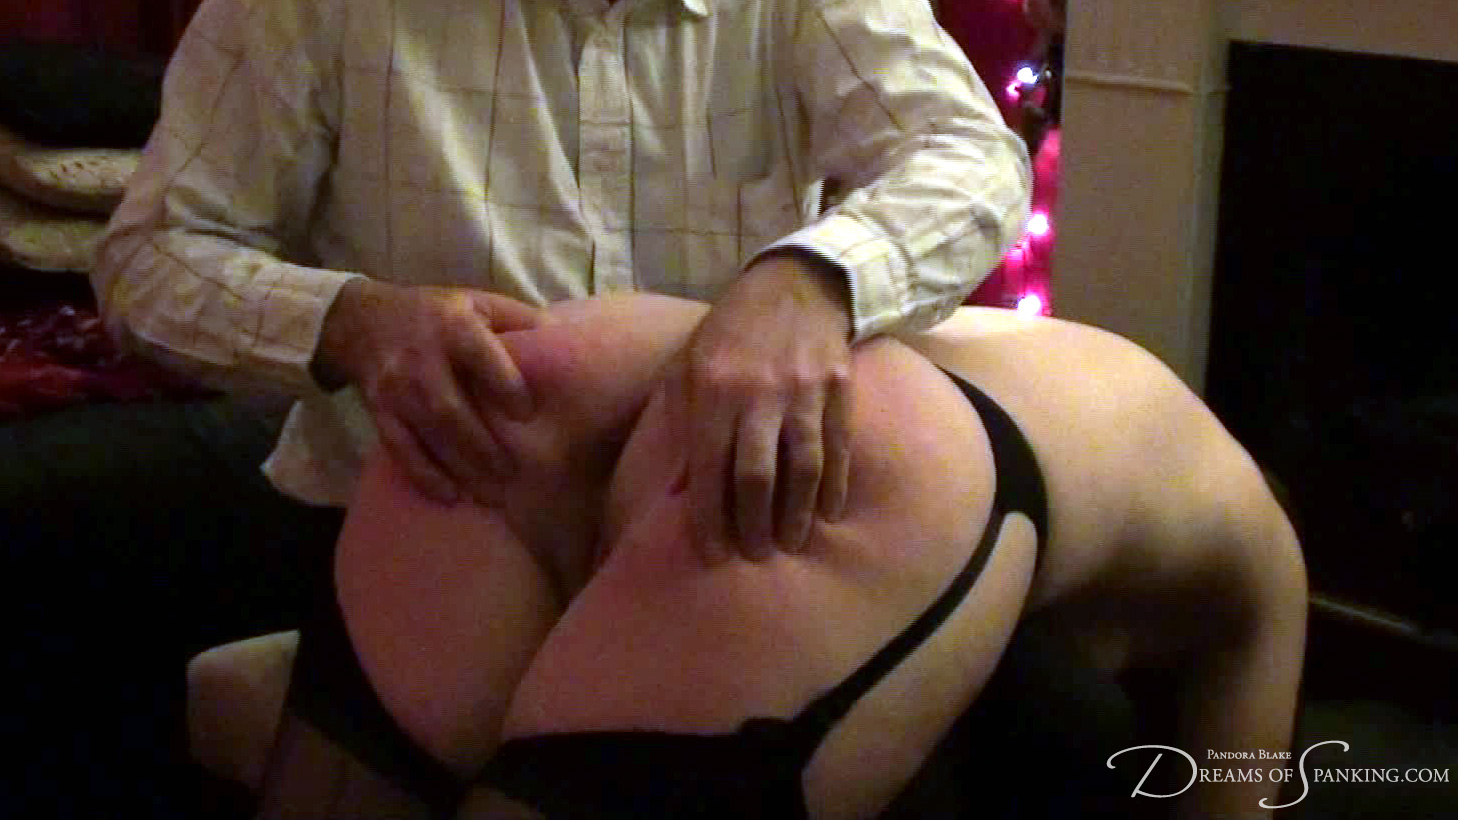 A firm hand spanking for Pandora Blake in this amateur porn film